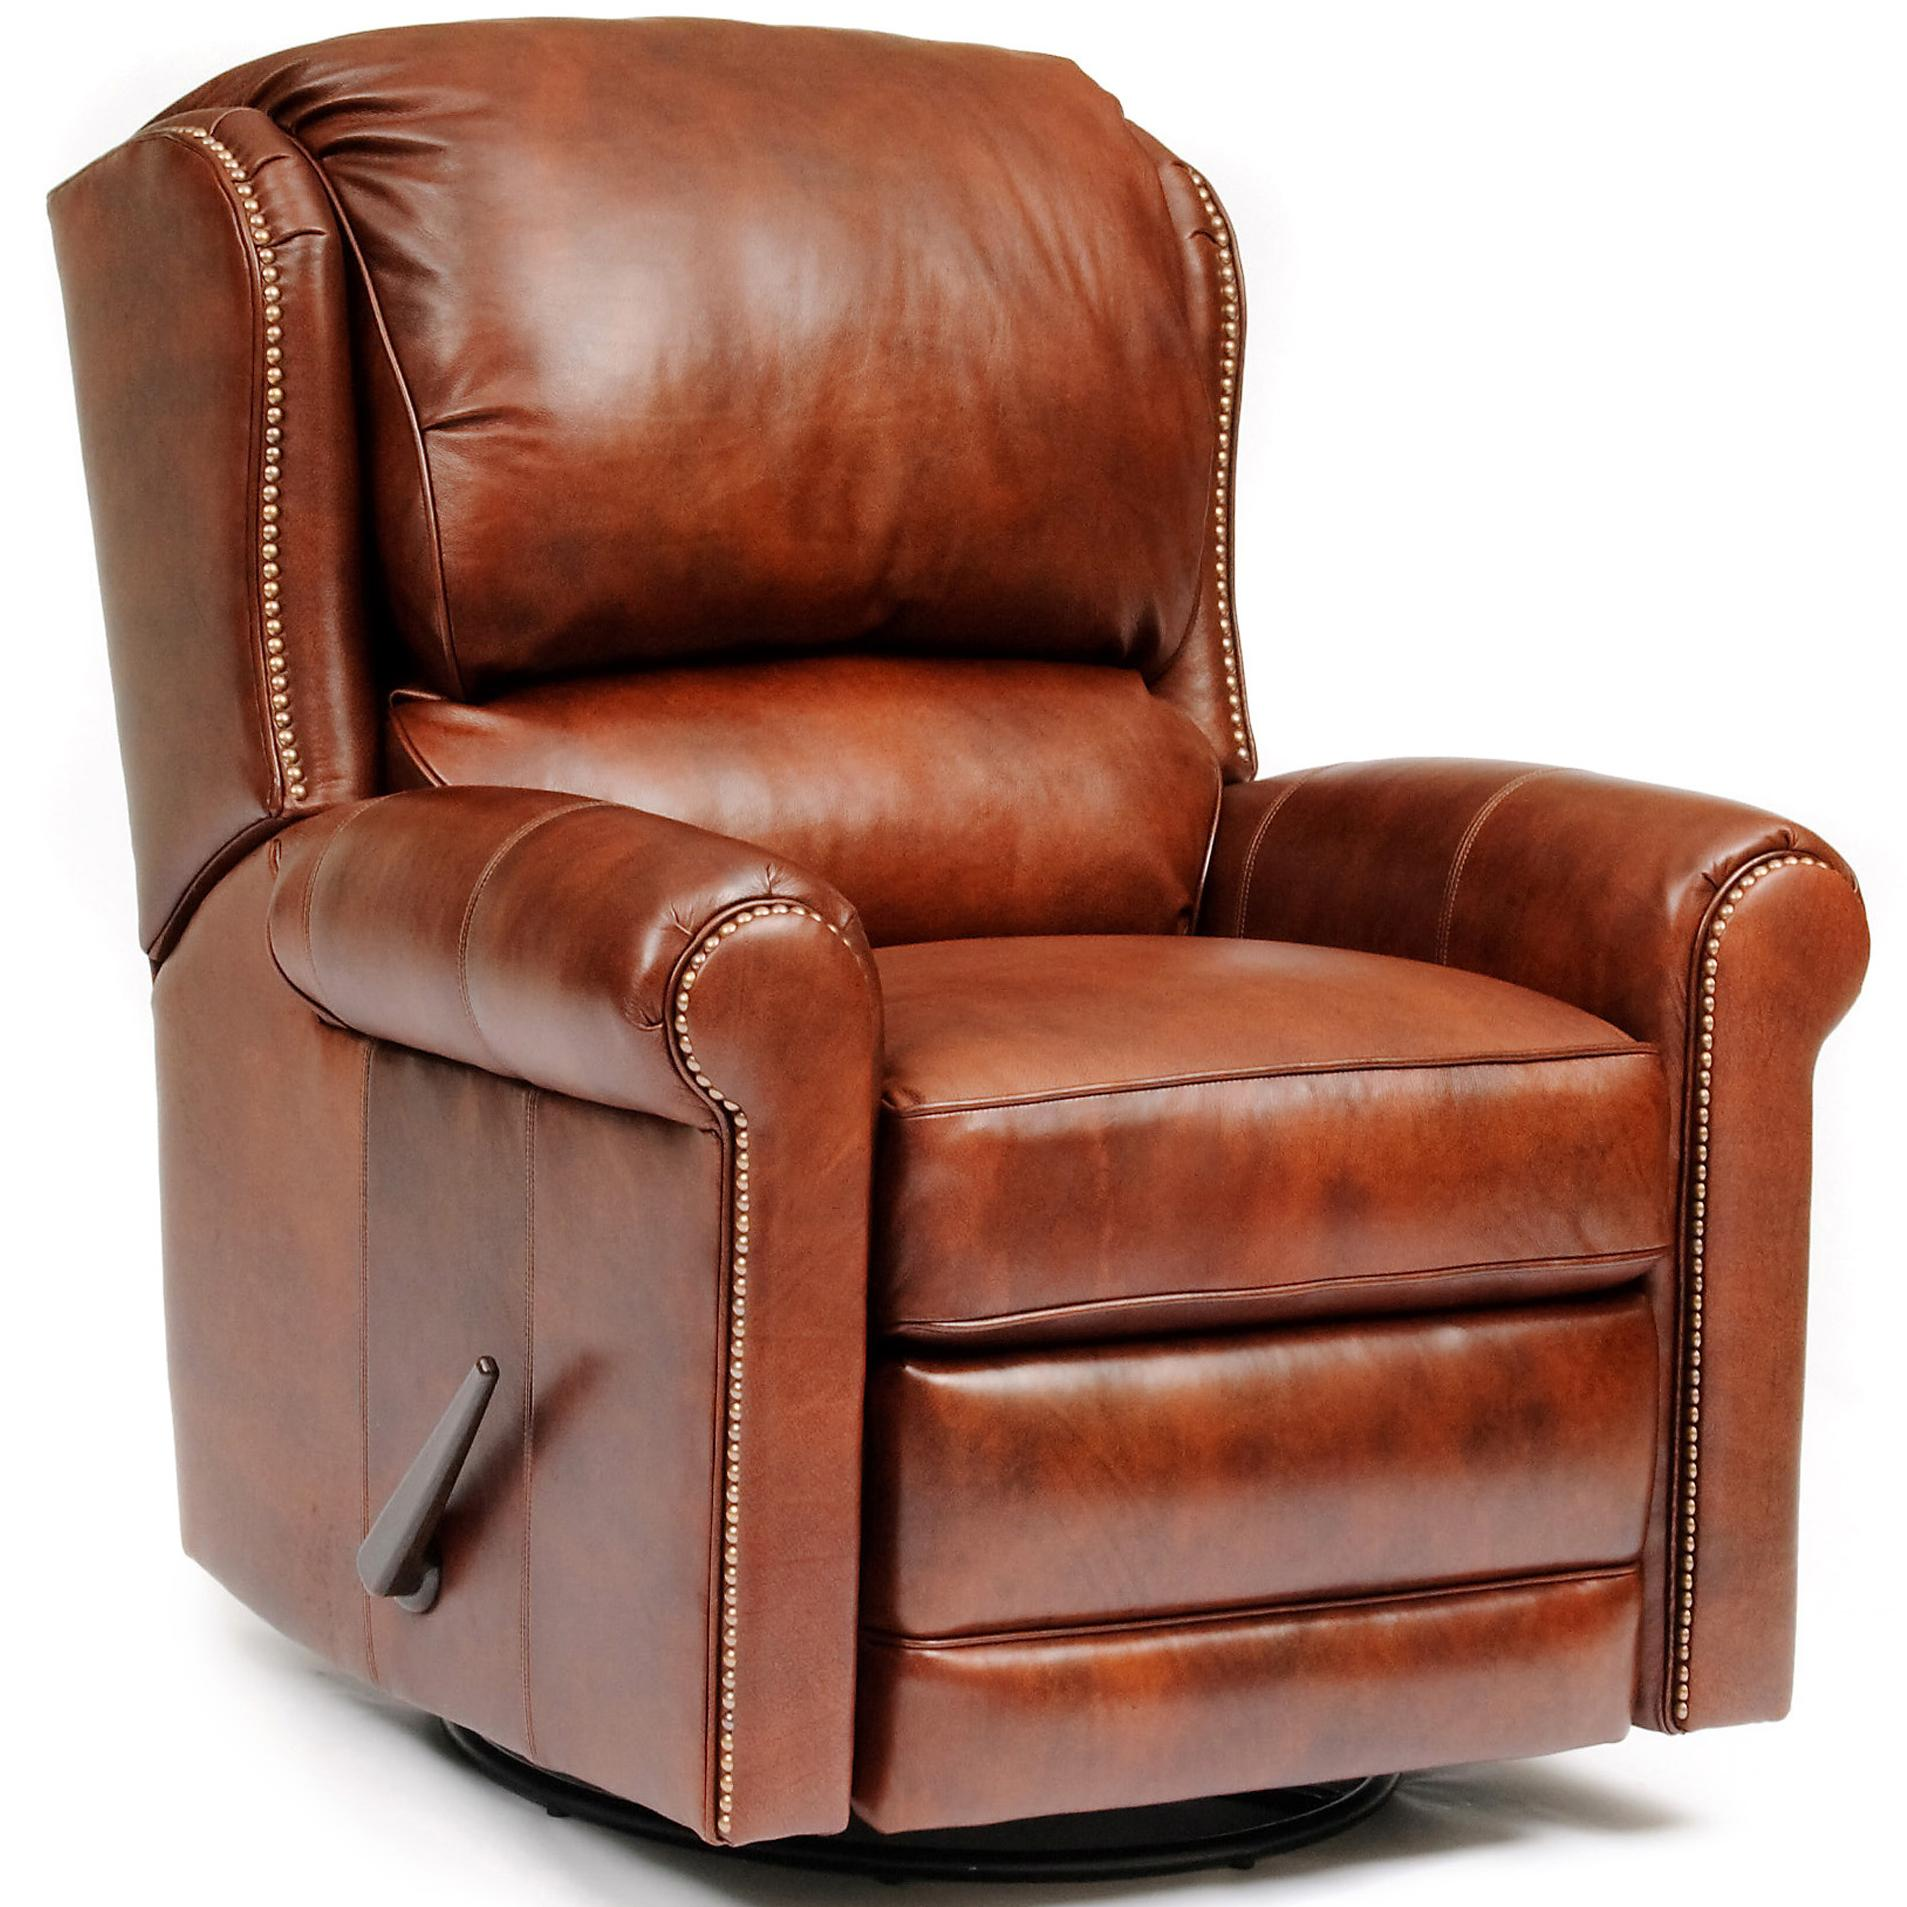 720L Casual Recliner  by Smith Brothers at Saugerties Furniture Mart